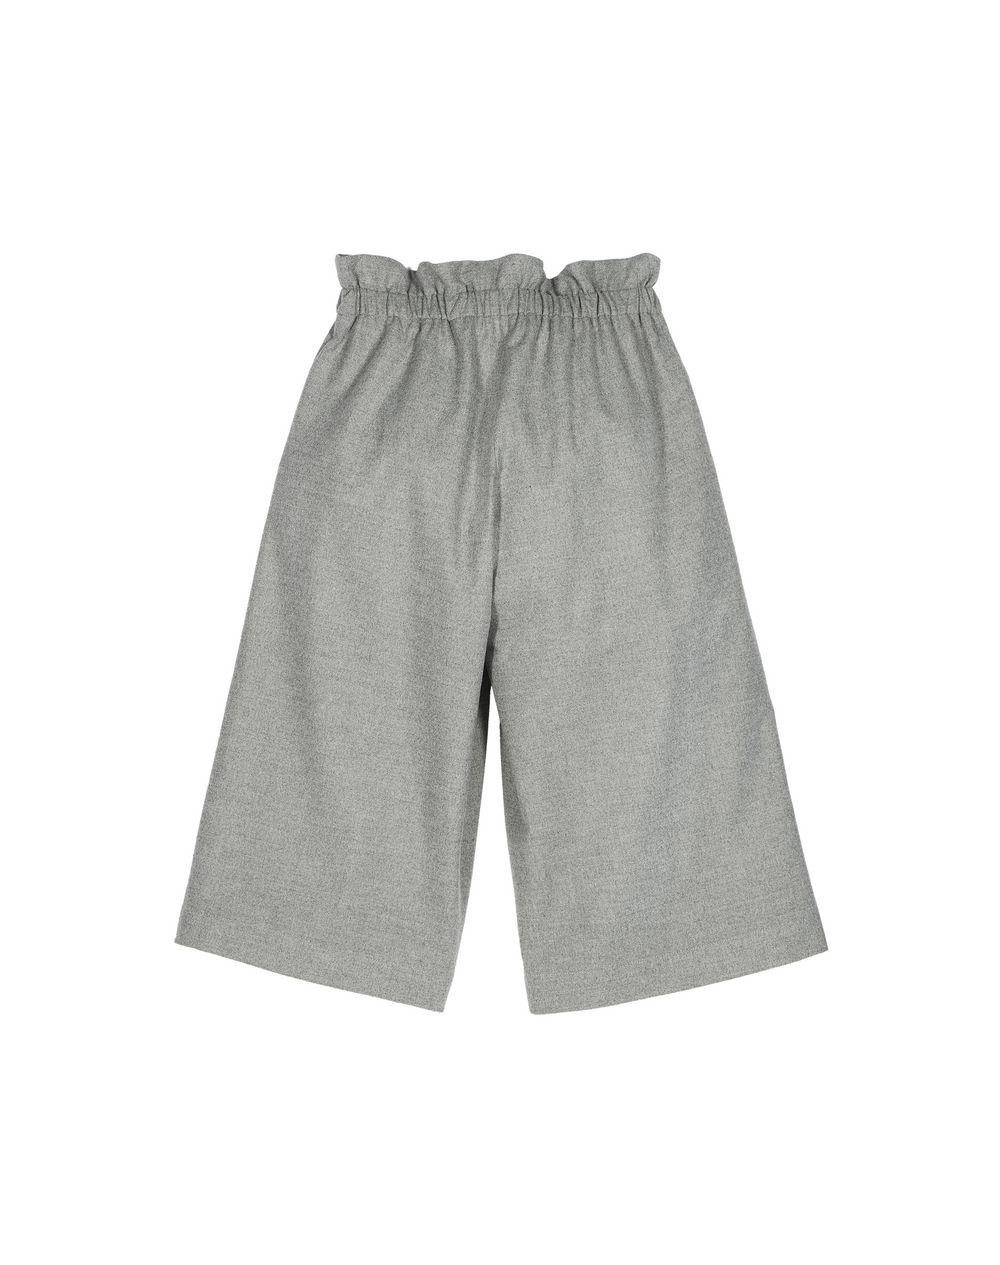 WIDE GRAY PANTS - Lanvin